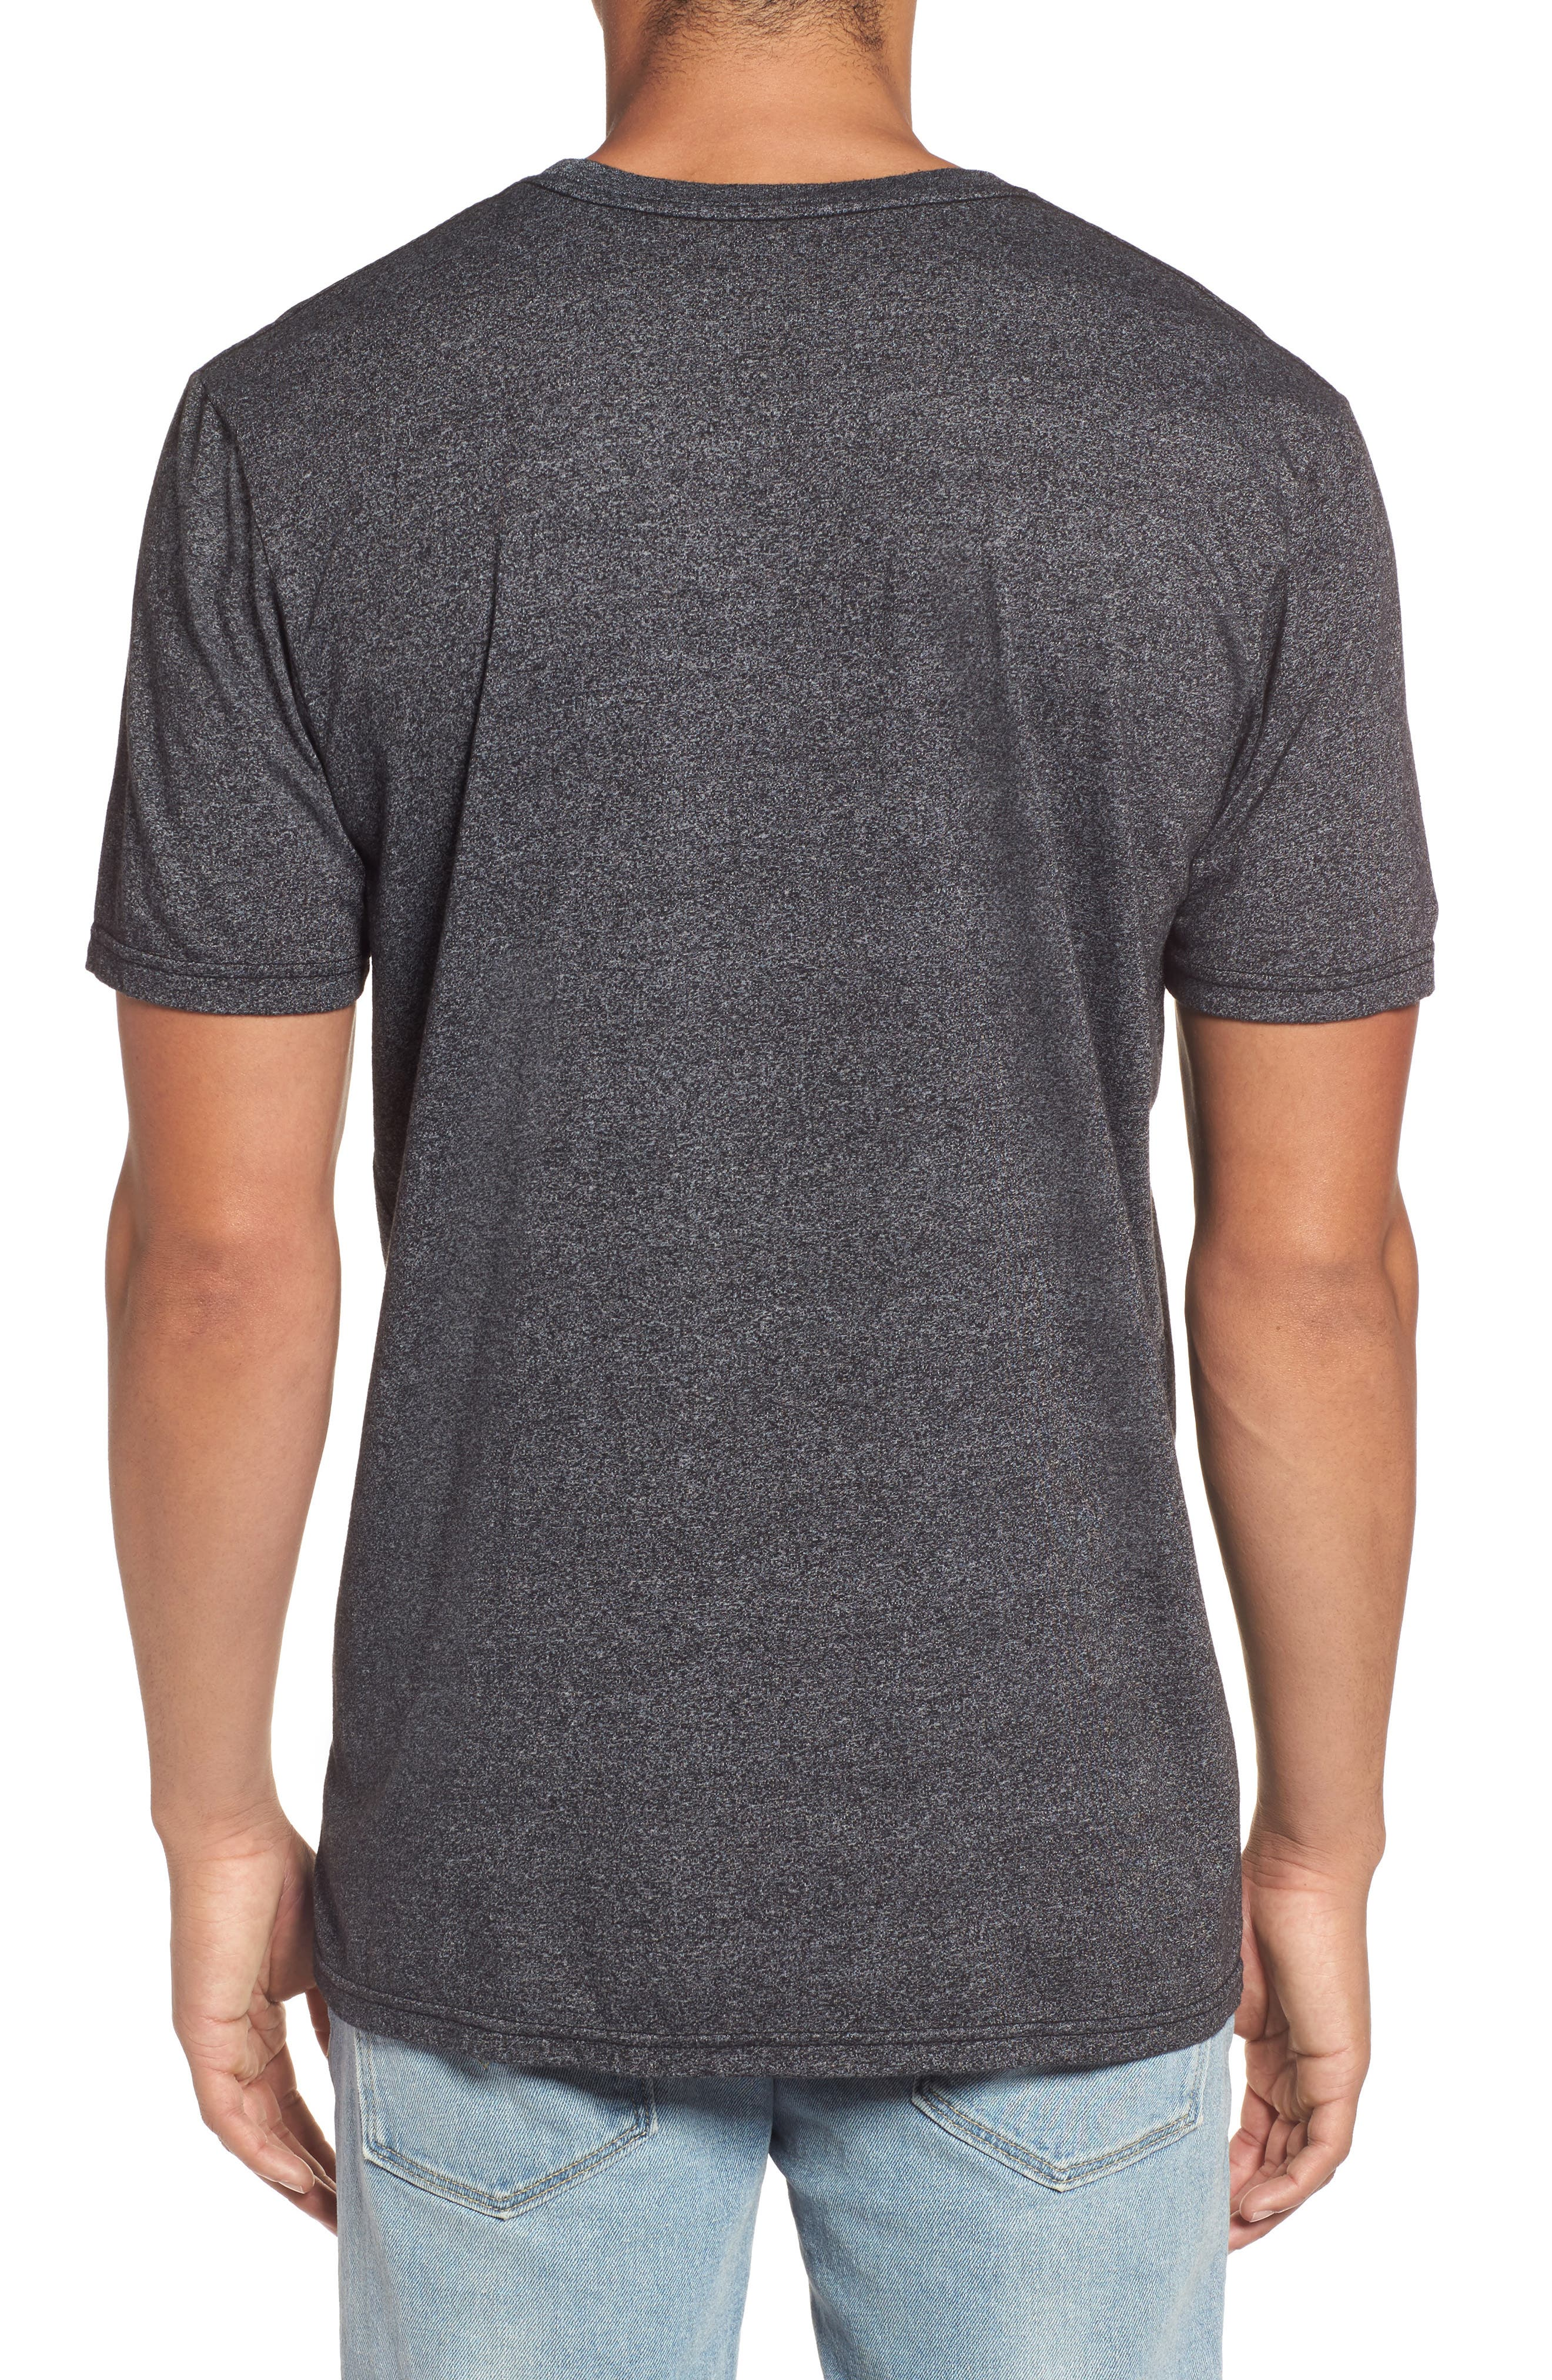 Alternate Image 2  - Rip Curl Bliss Mock Twist Graphic T-Shirt